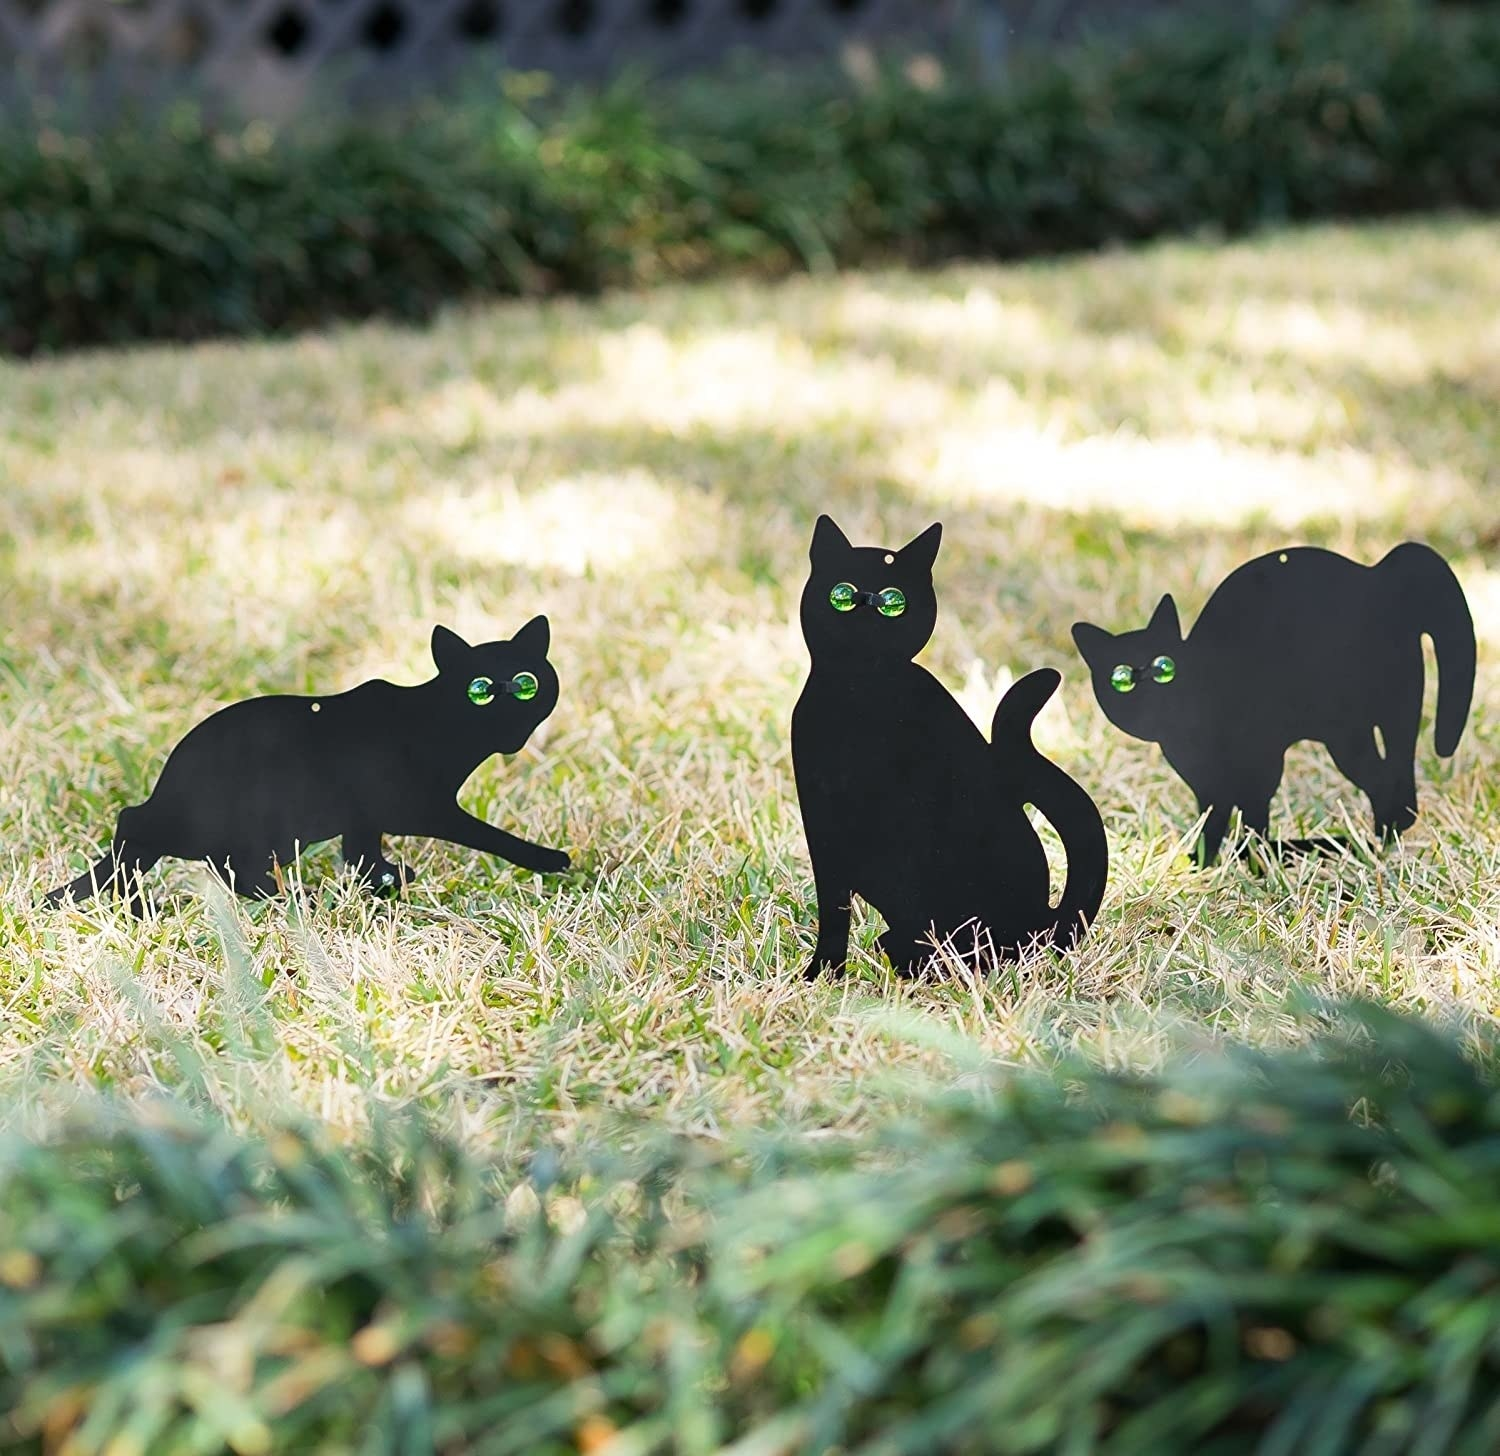 The black scare cats, which are about the size of a real cat and have reflective eyes